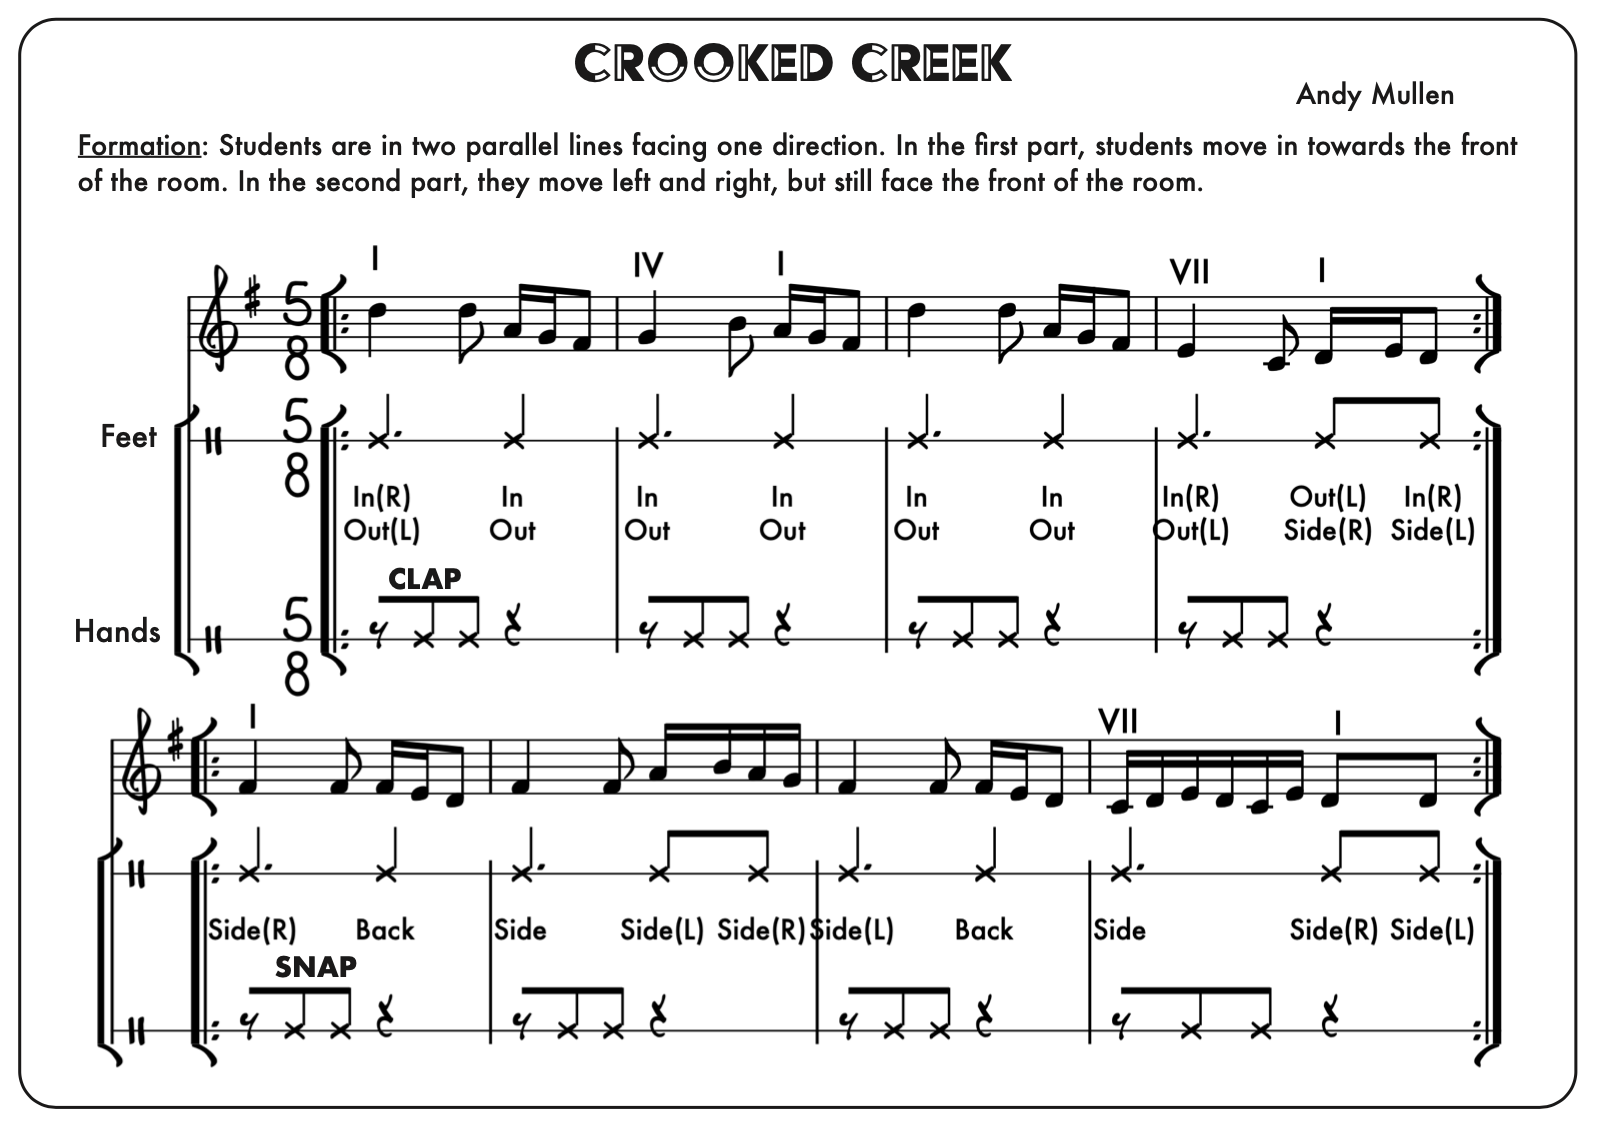 Screen Shot 2021 02 17 at 1.52.15 PM - Crooked Creek (Tunes for Teaching)